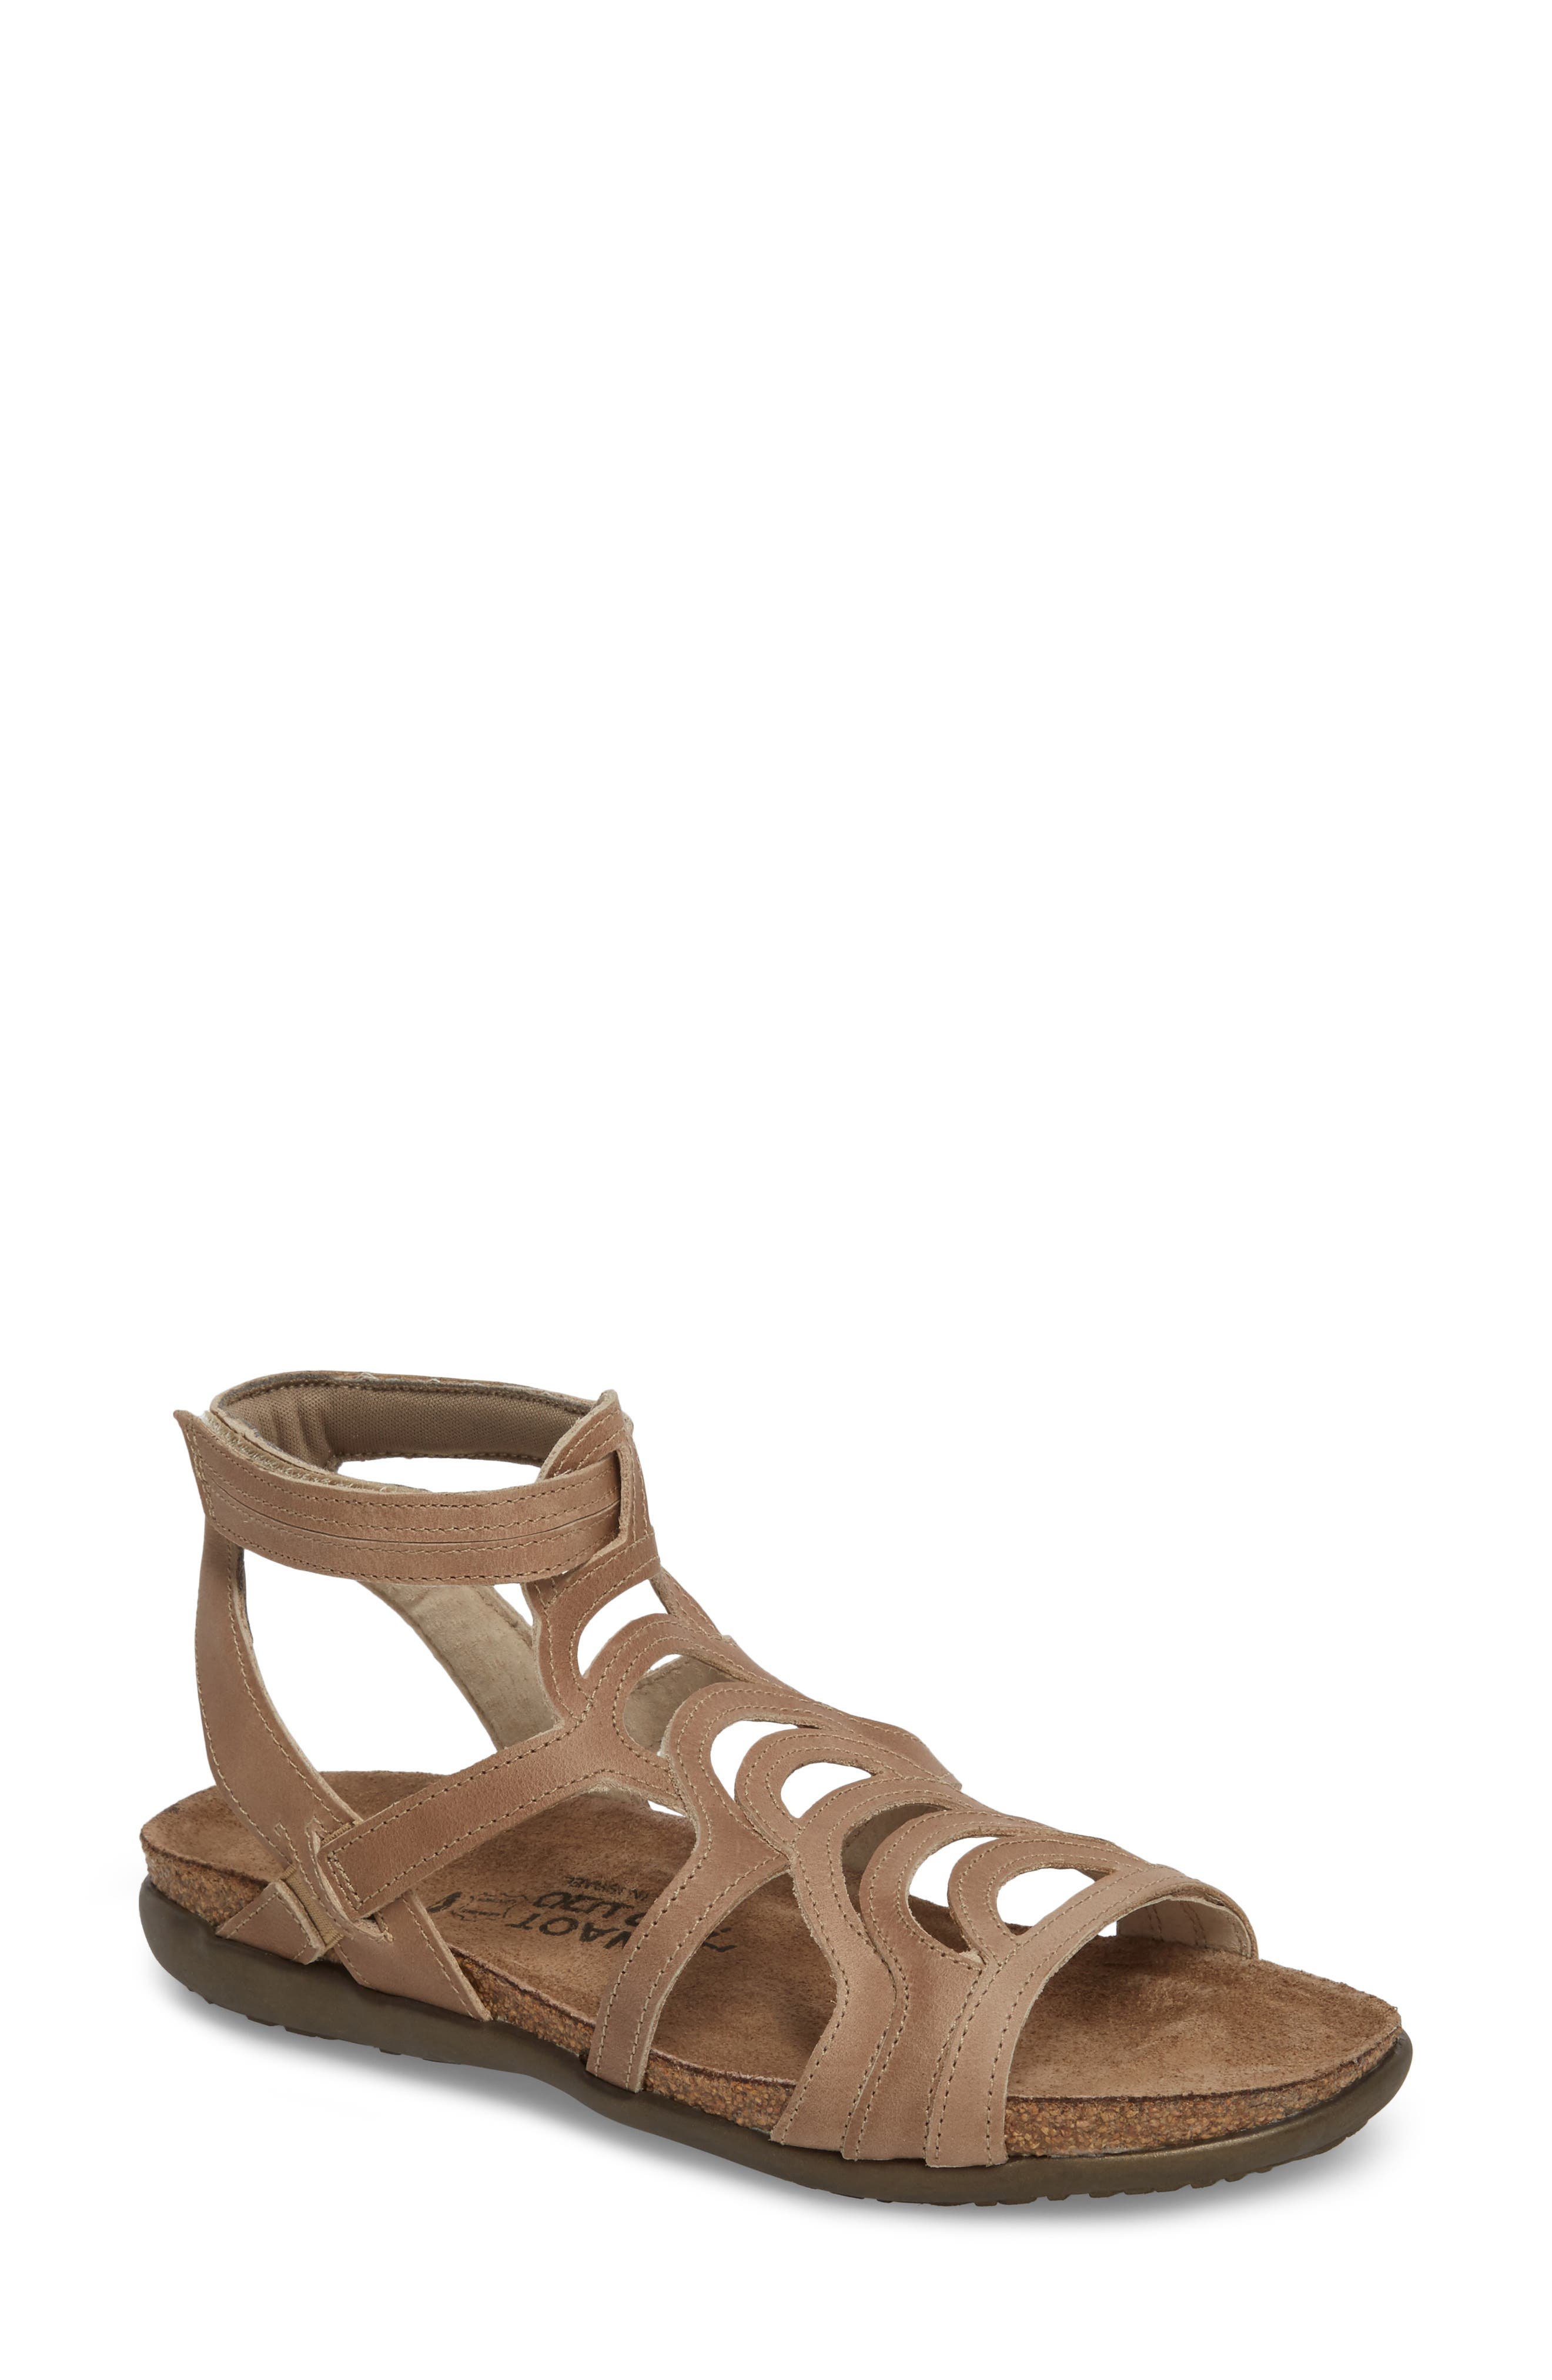 'Sara' Gladiator Sandal,                             Main thumbnail 1, color,                             KHAKI BEIGE LEATHER